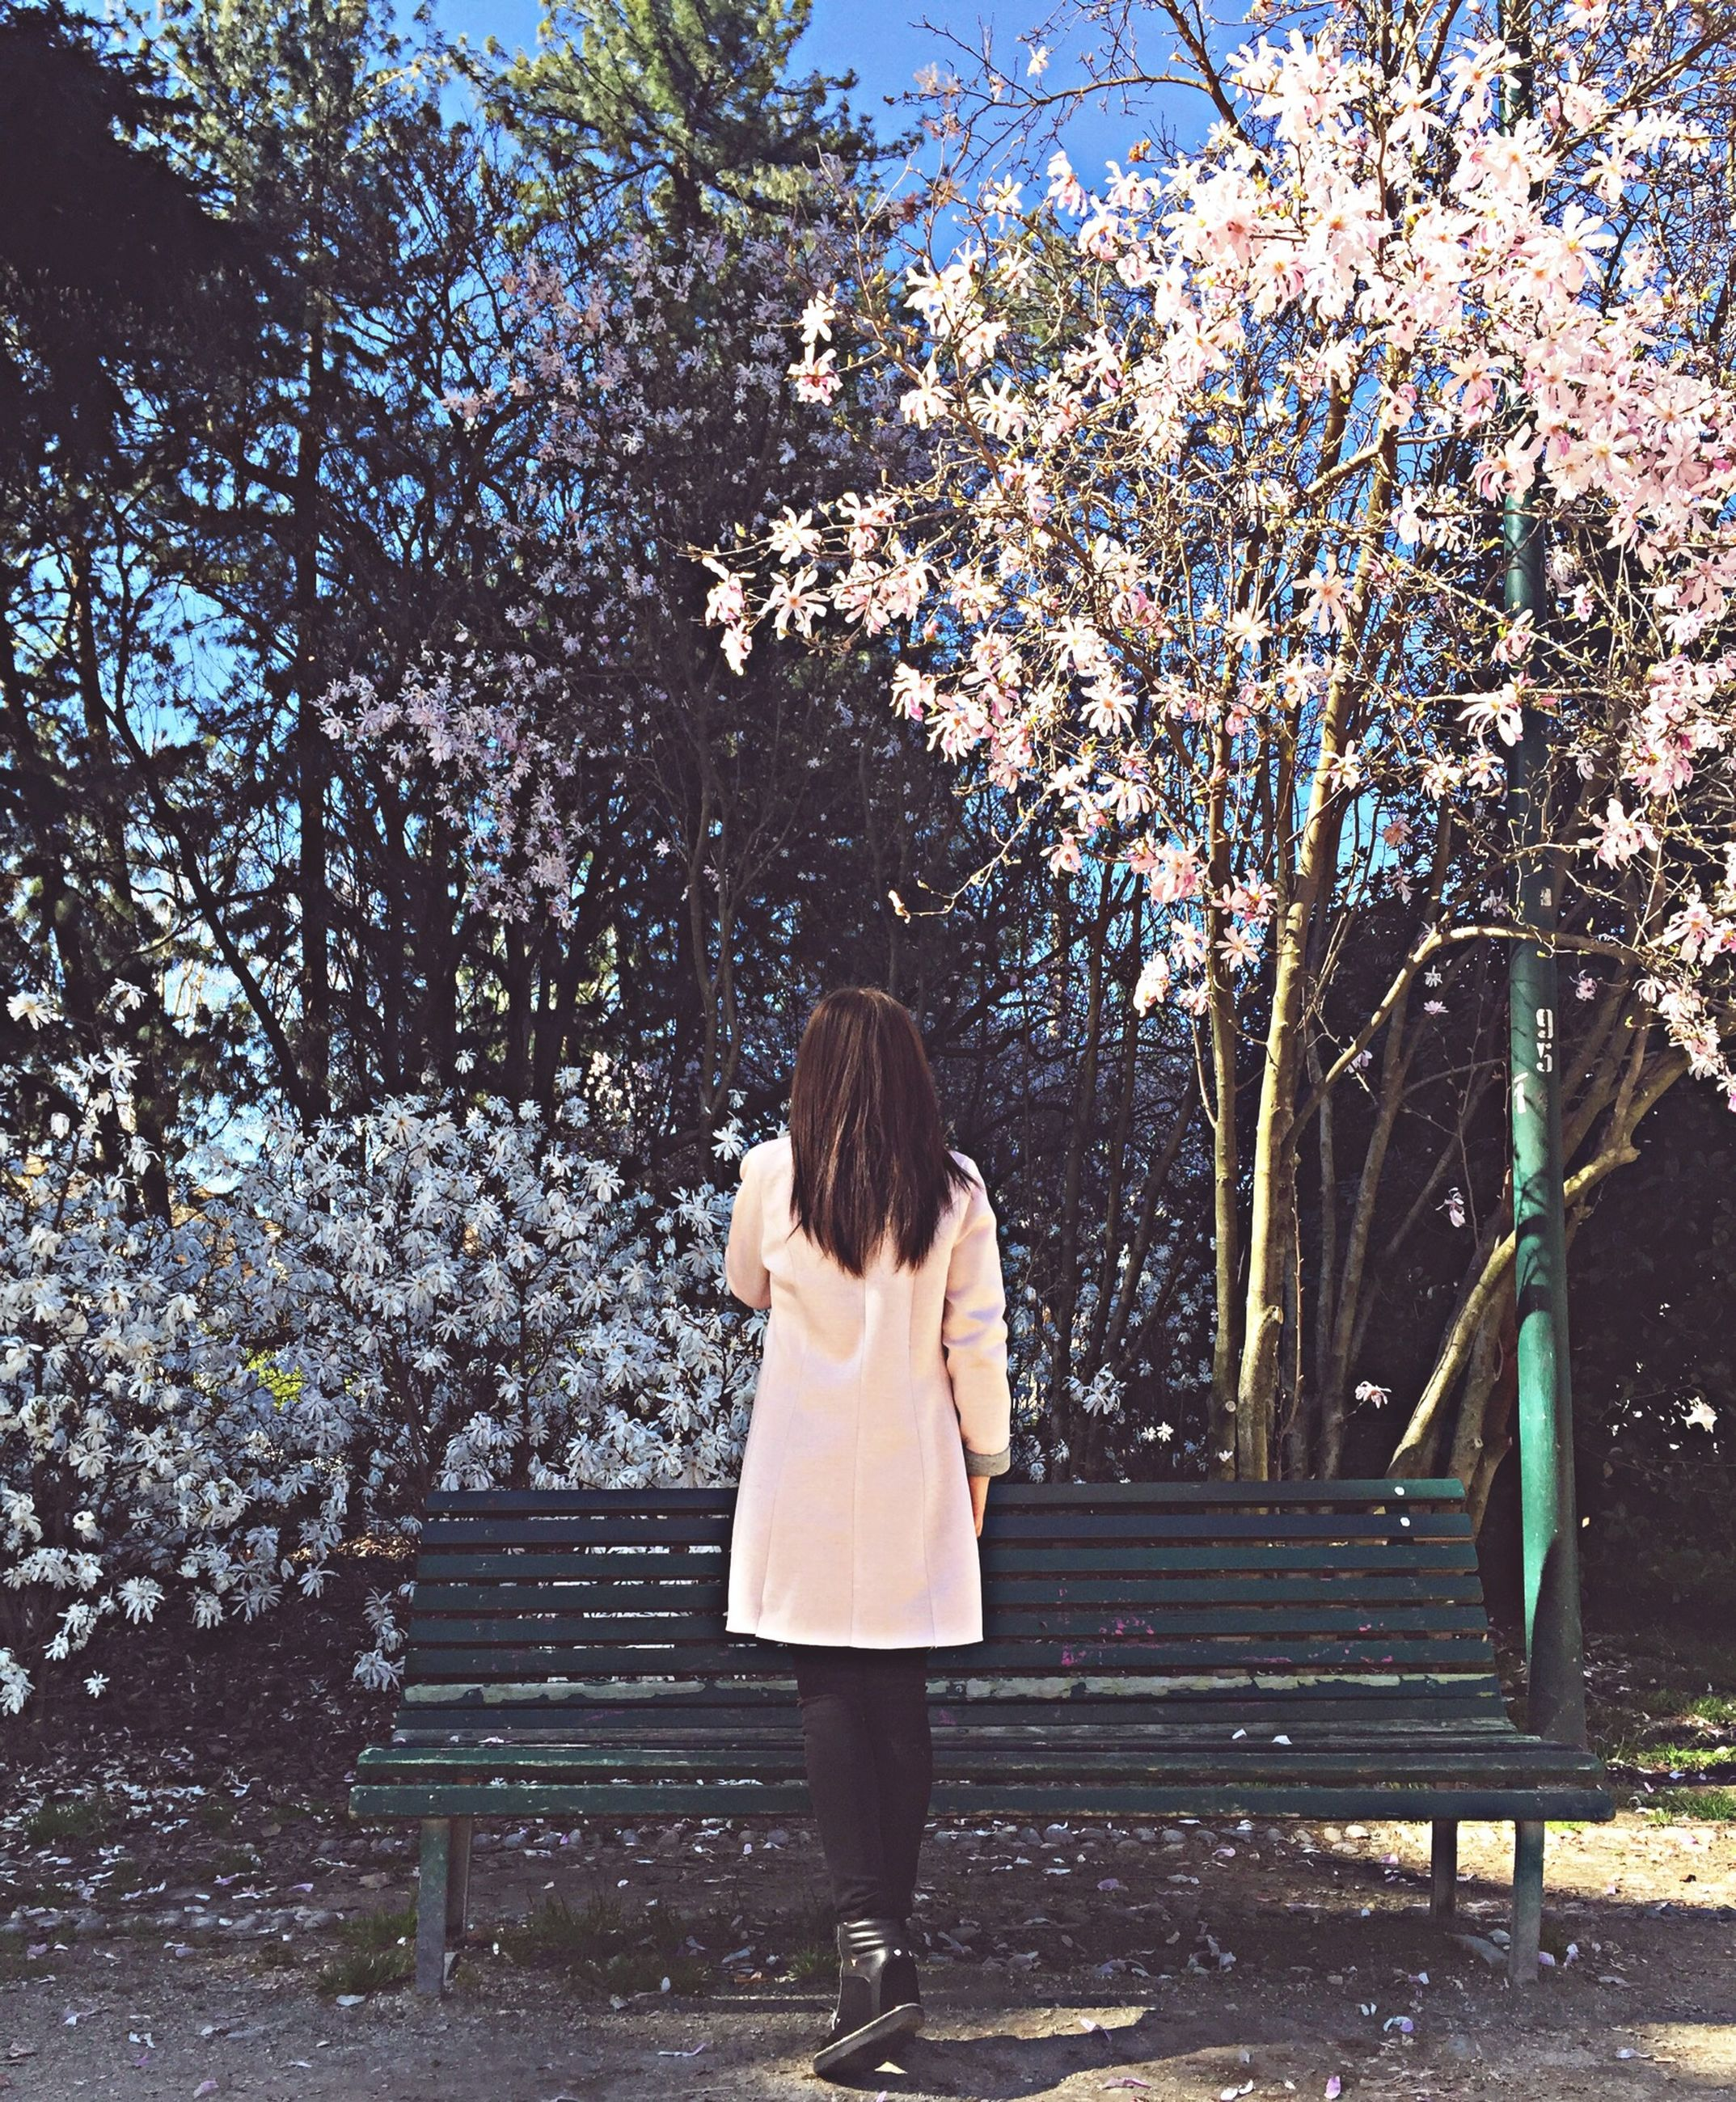 tree, rear view, lifestyles, full length, leisure activity, person, standing, casual clothing, flower, walking, park - man made space, nature, growth, outdoors, men, day, branch, holding